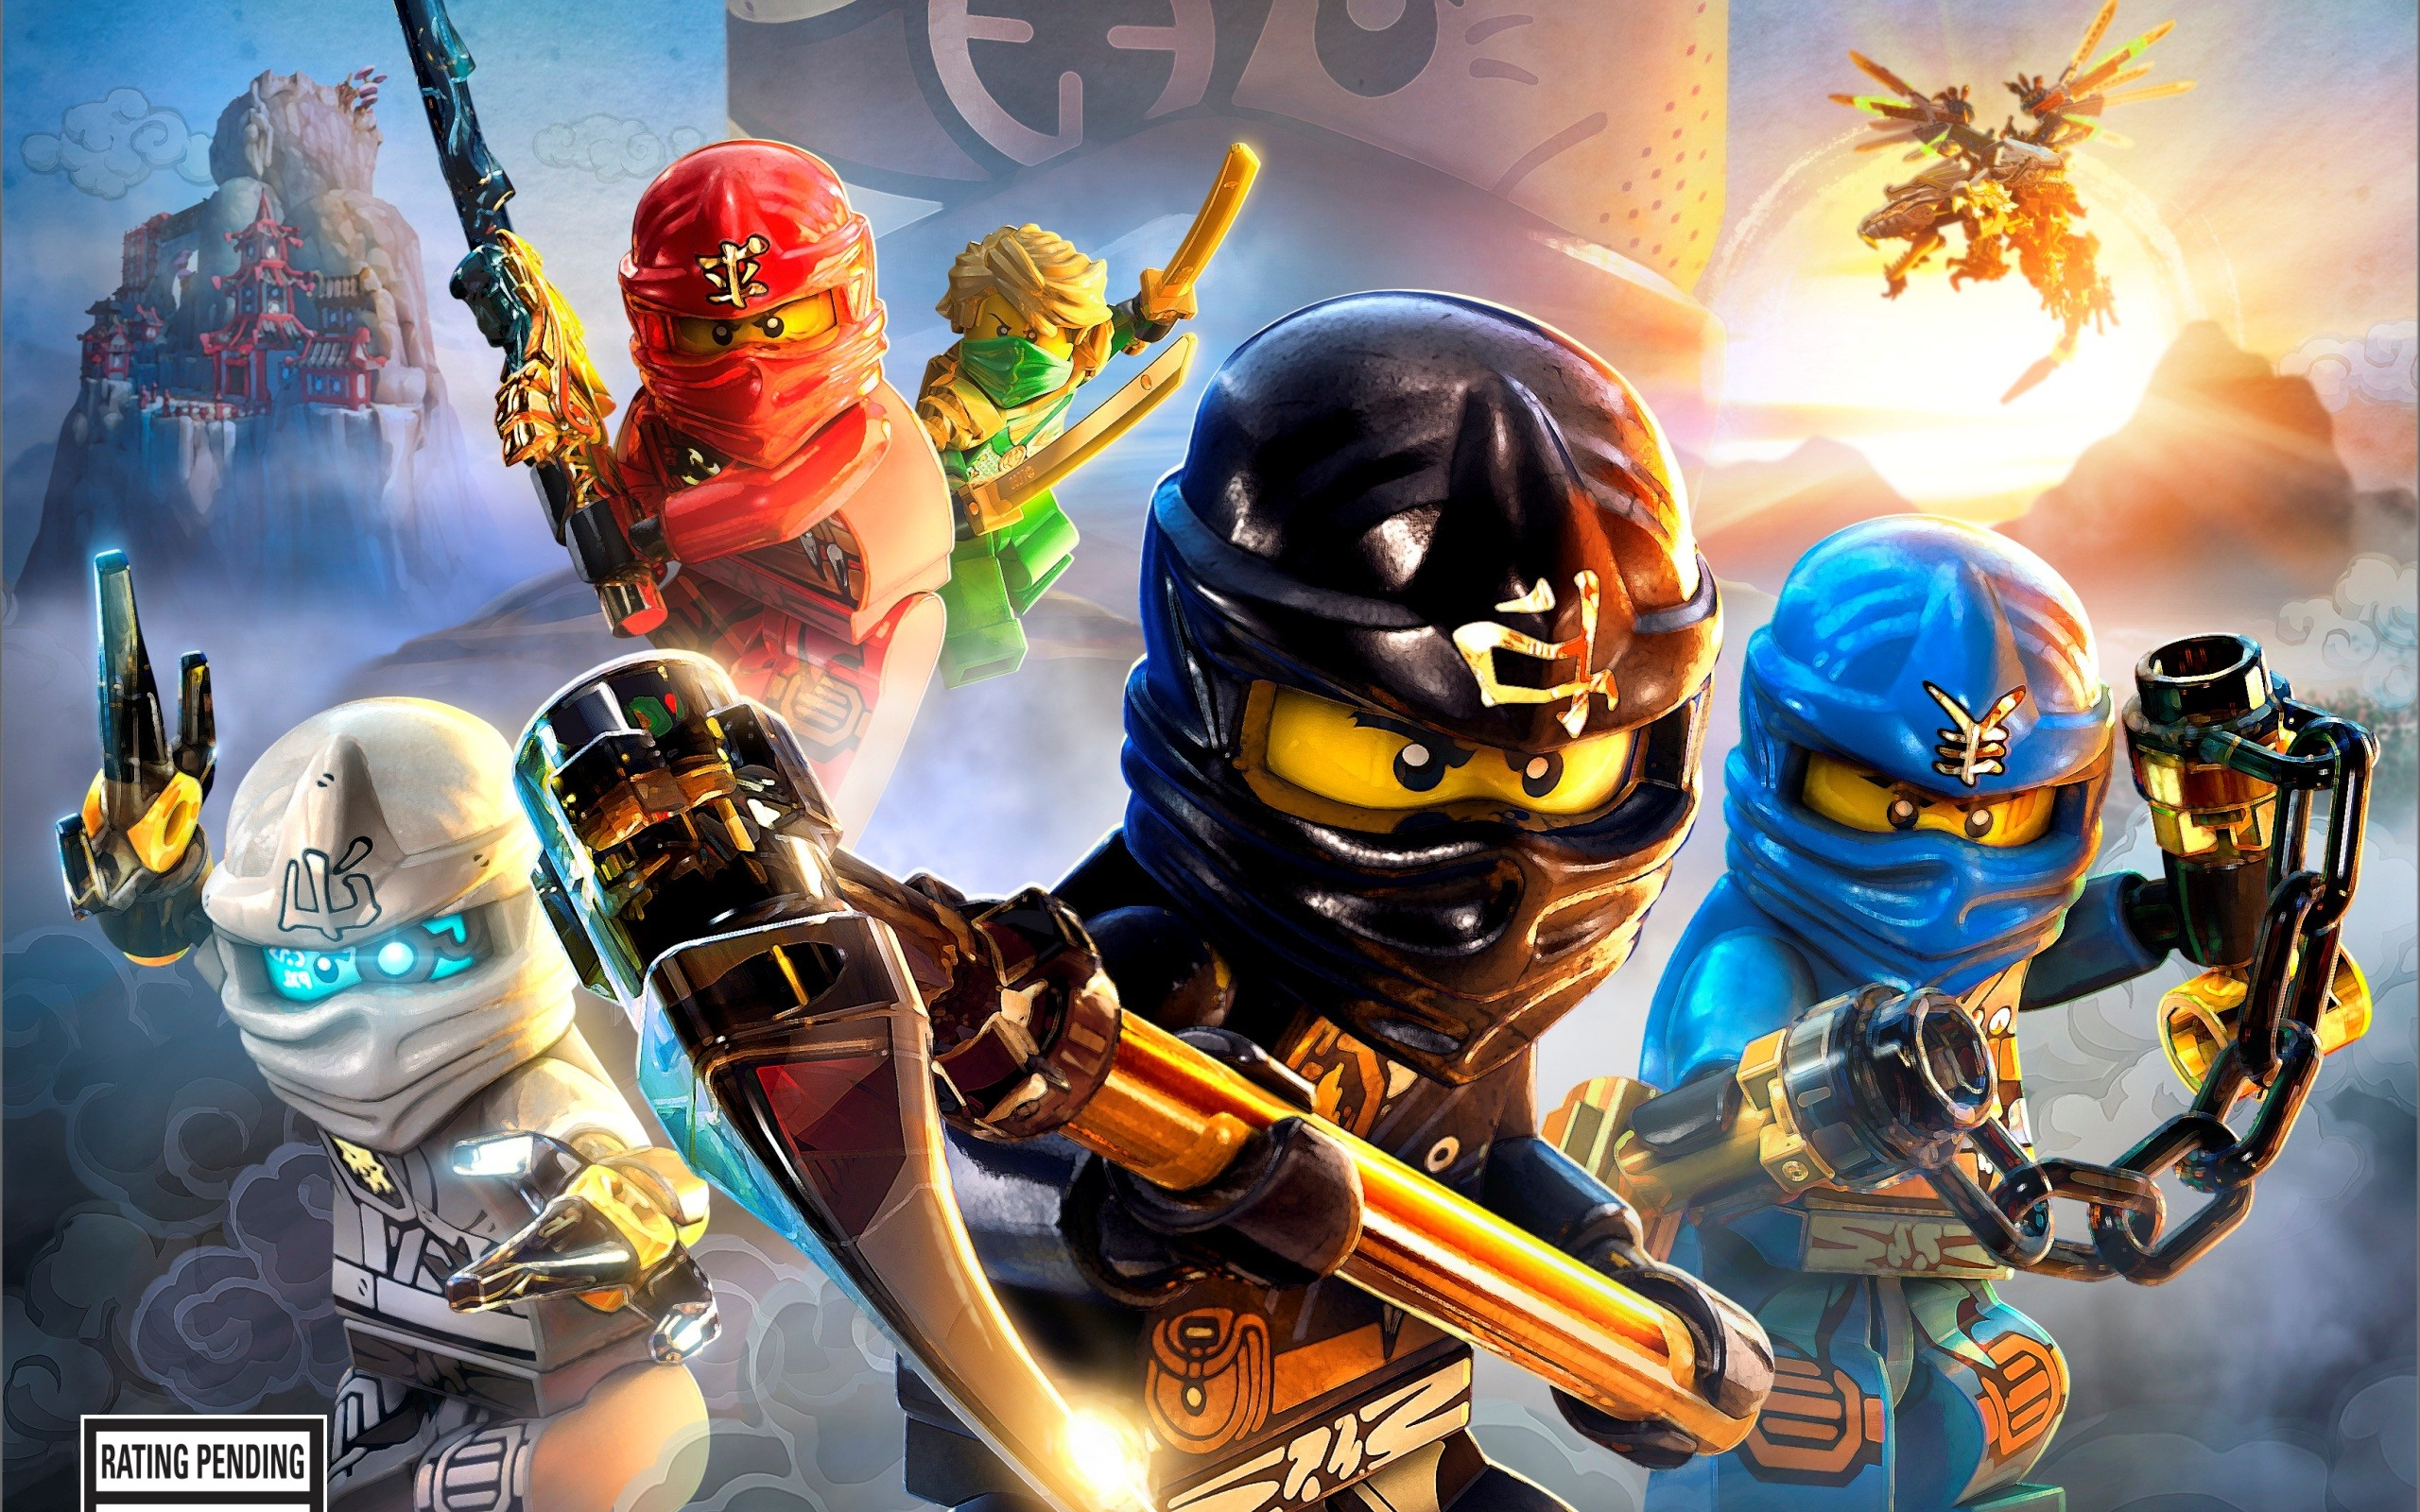 2560x1600 LEGO Ninjago Wallpaper